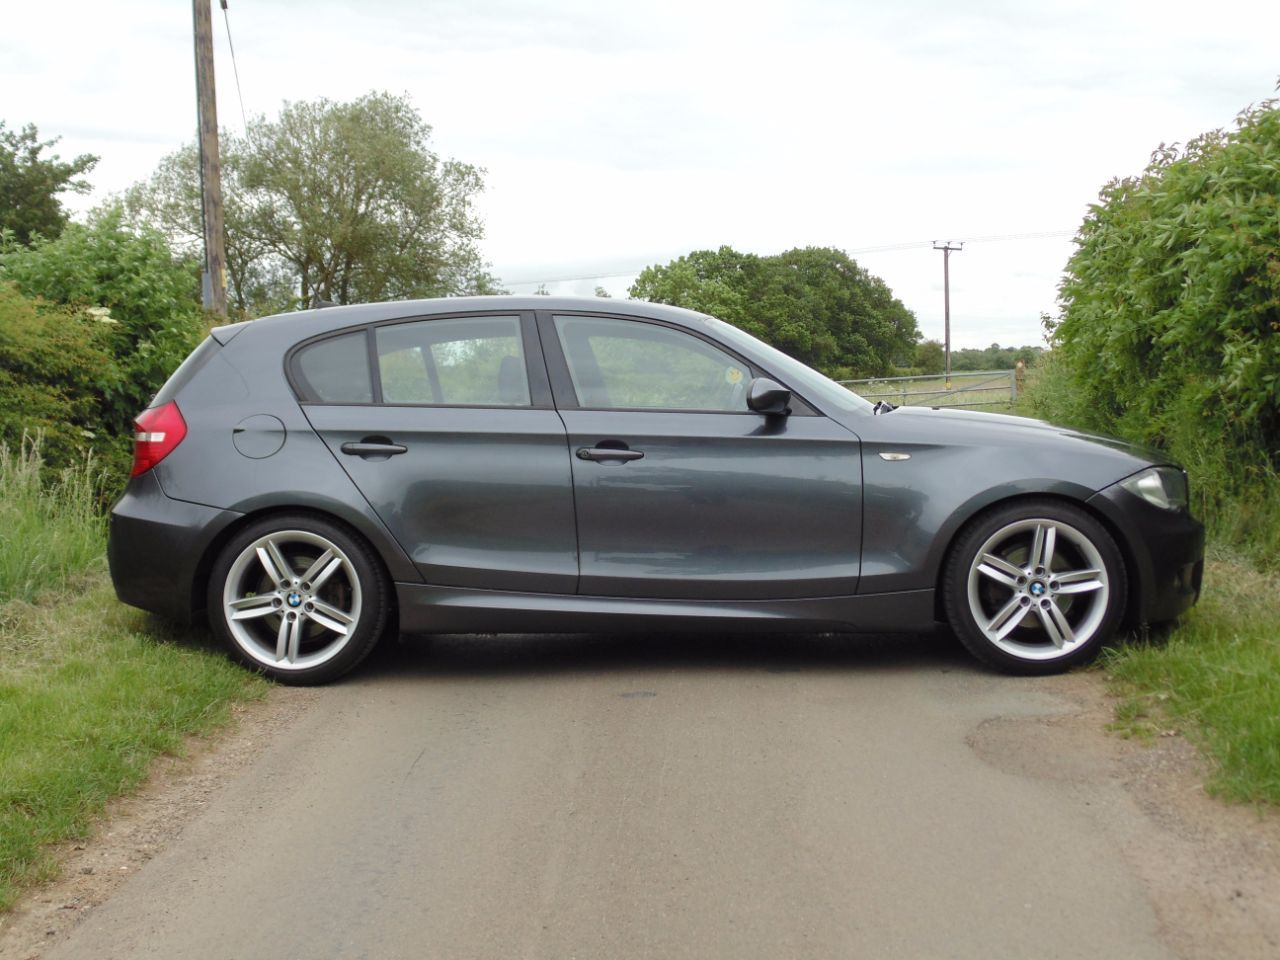 used bmw 1 series and second hand bmw 1 series in nottingham. Black Bedroom Furniture Sets. Home Design Ideas